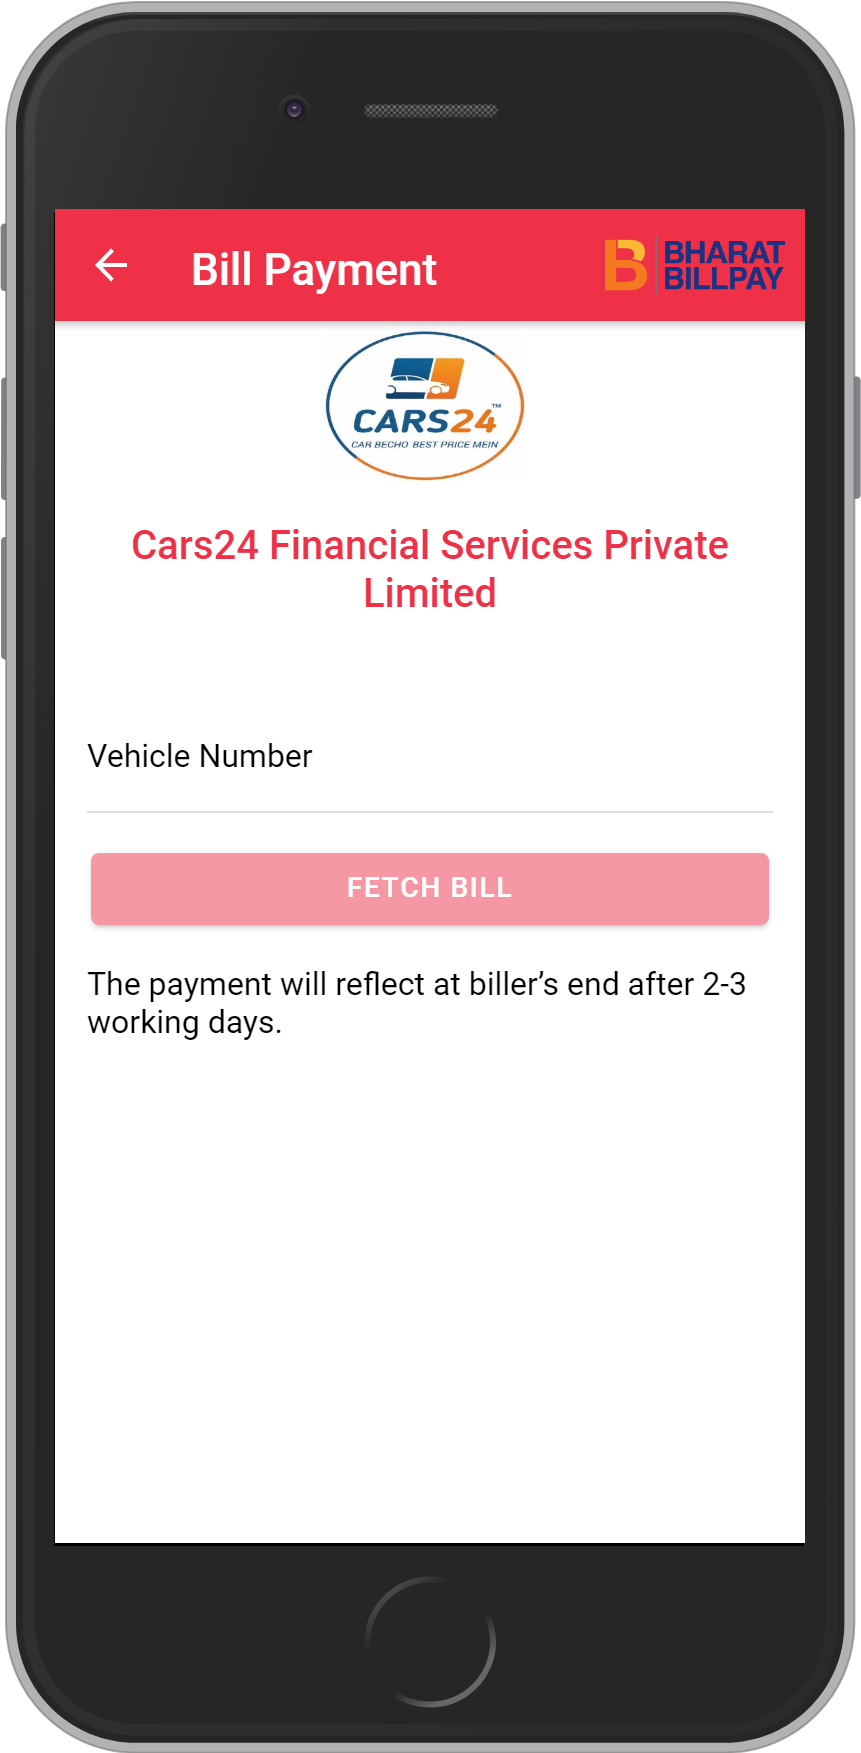 Get UNLIMITED <b>0.1%</b> CASHBACK on Cars24 Financial Services Private Limited Loan Payment.